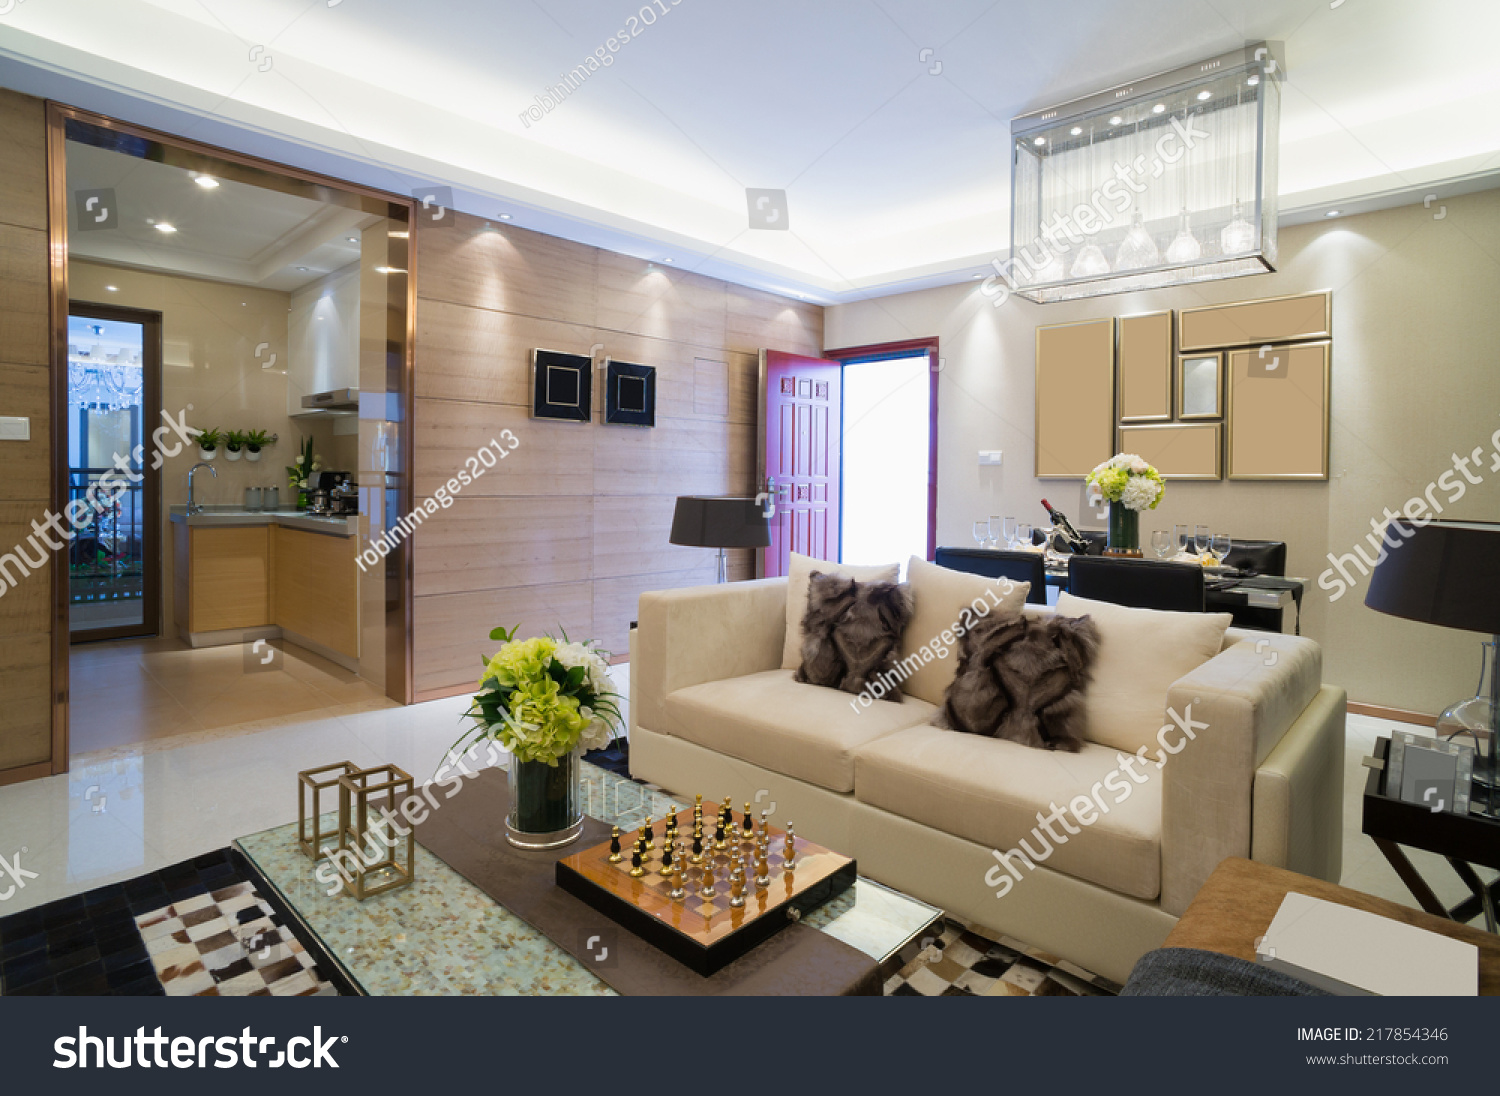 Nice decoration for living room